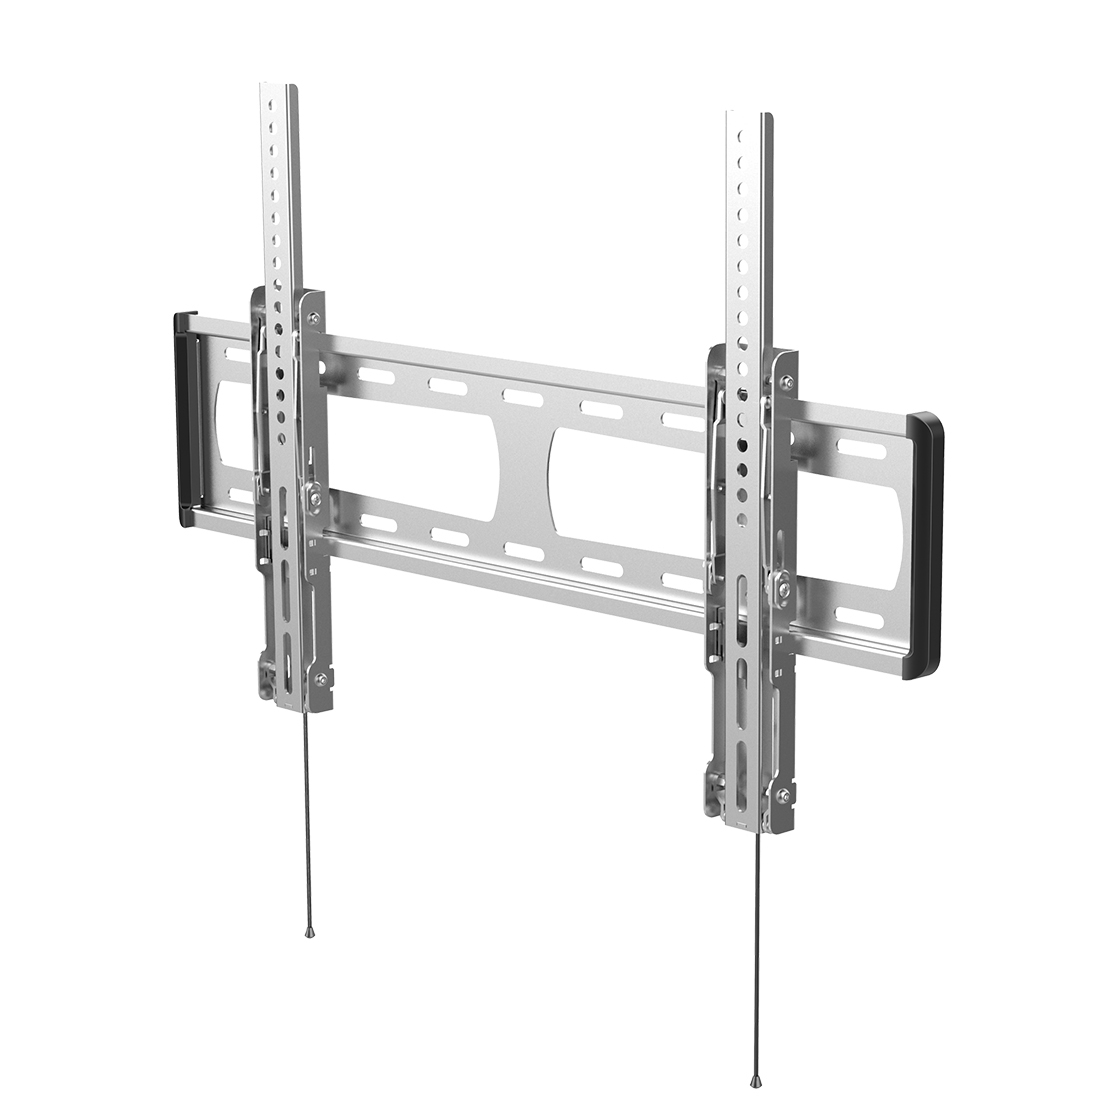 "LOCTEK O1MT OUTDOOR TILT TV WALL MOUNT BRACKET FOR MOST 32""- 70"""